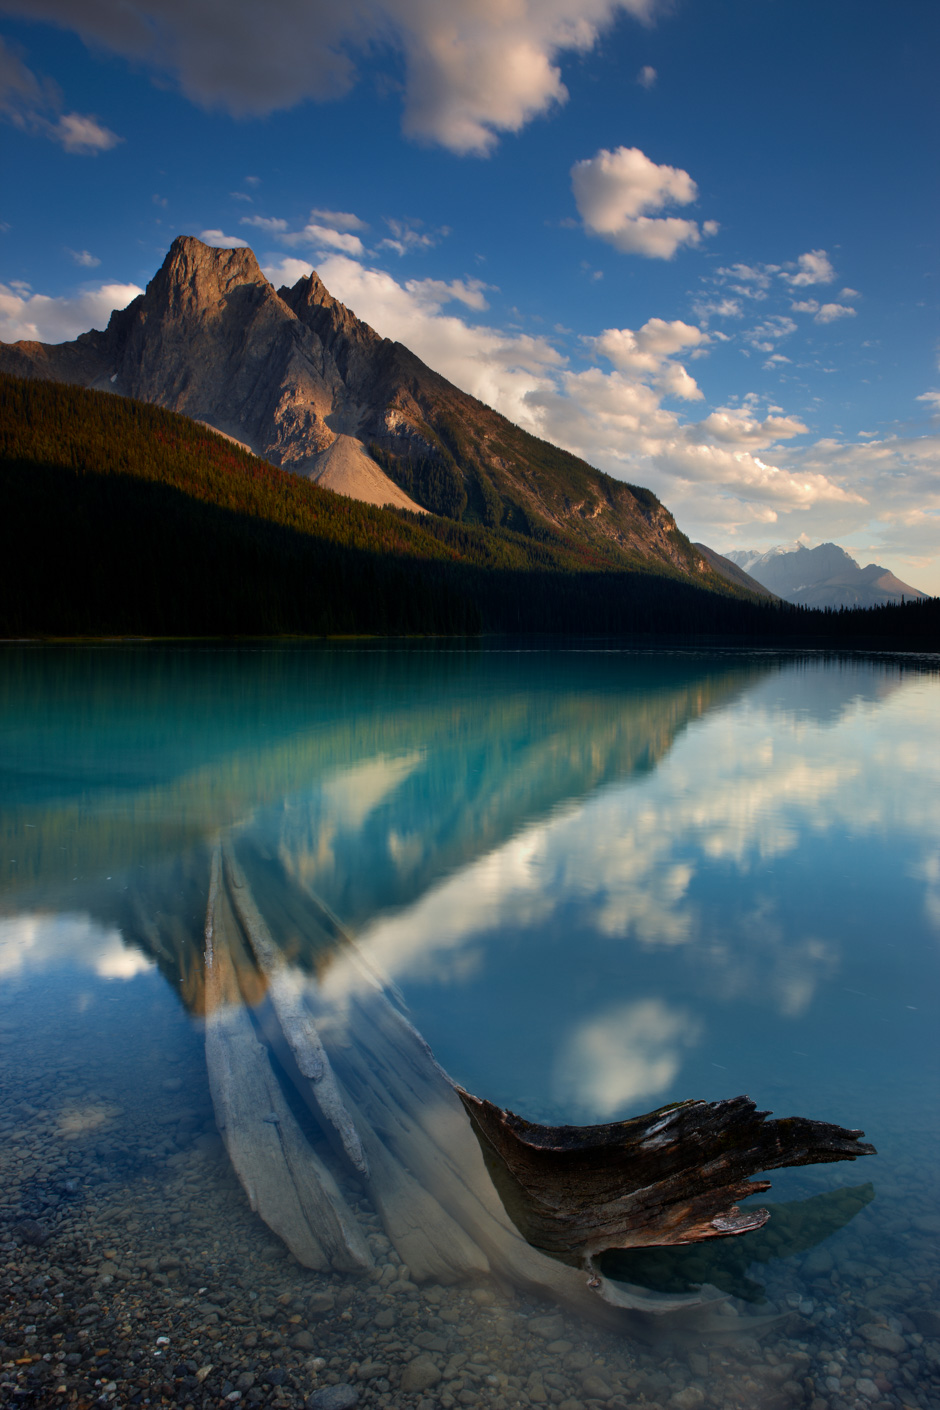 Emerald Lake at dusk with the peak of Mount Burgess beyond, Yoho National Park, British Columbia, Canada